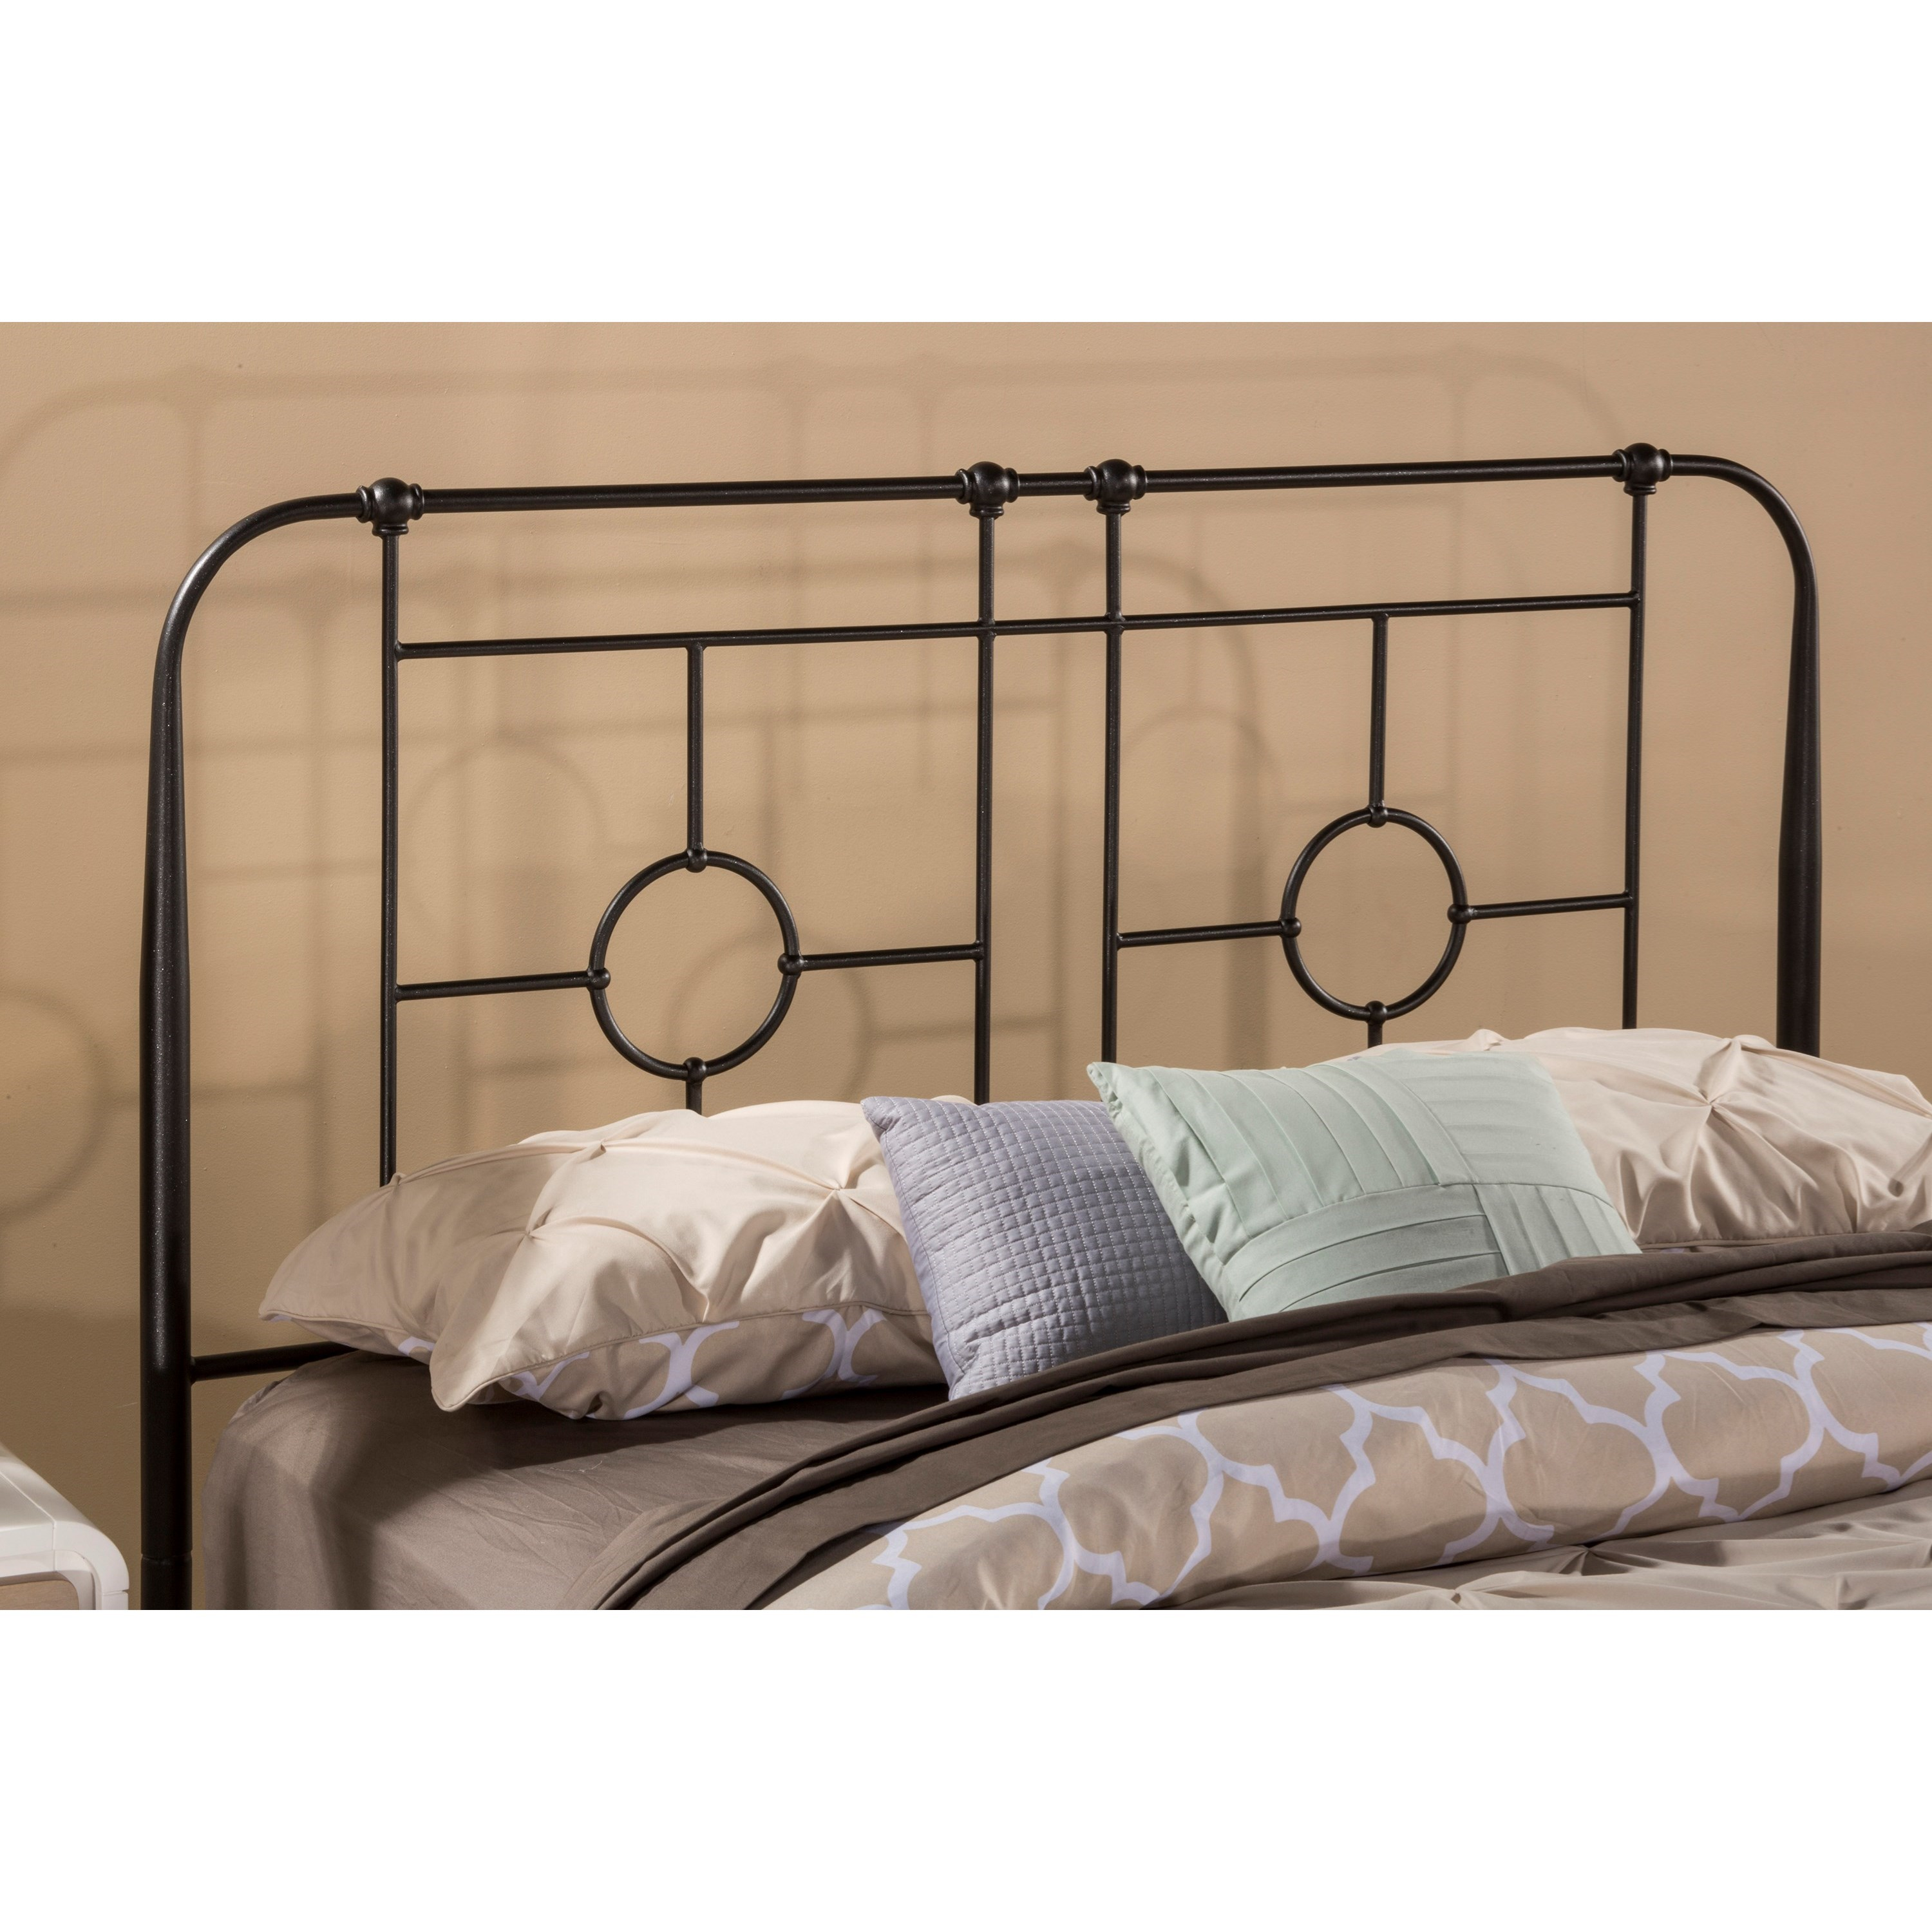 Metal Beds Full/Queen Headboard with Frame by Hillsdale at Steger's Furniture